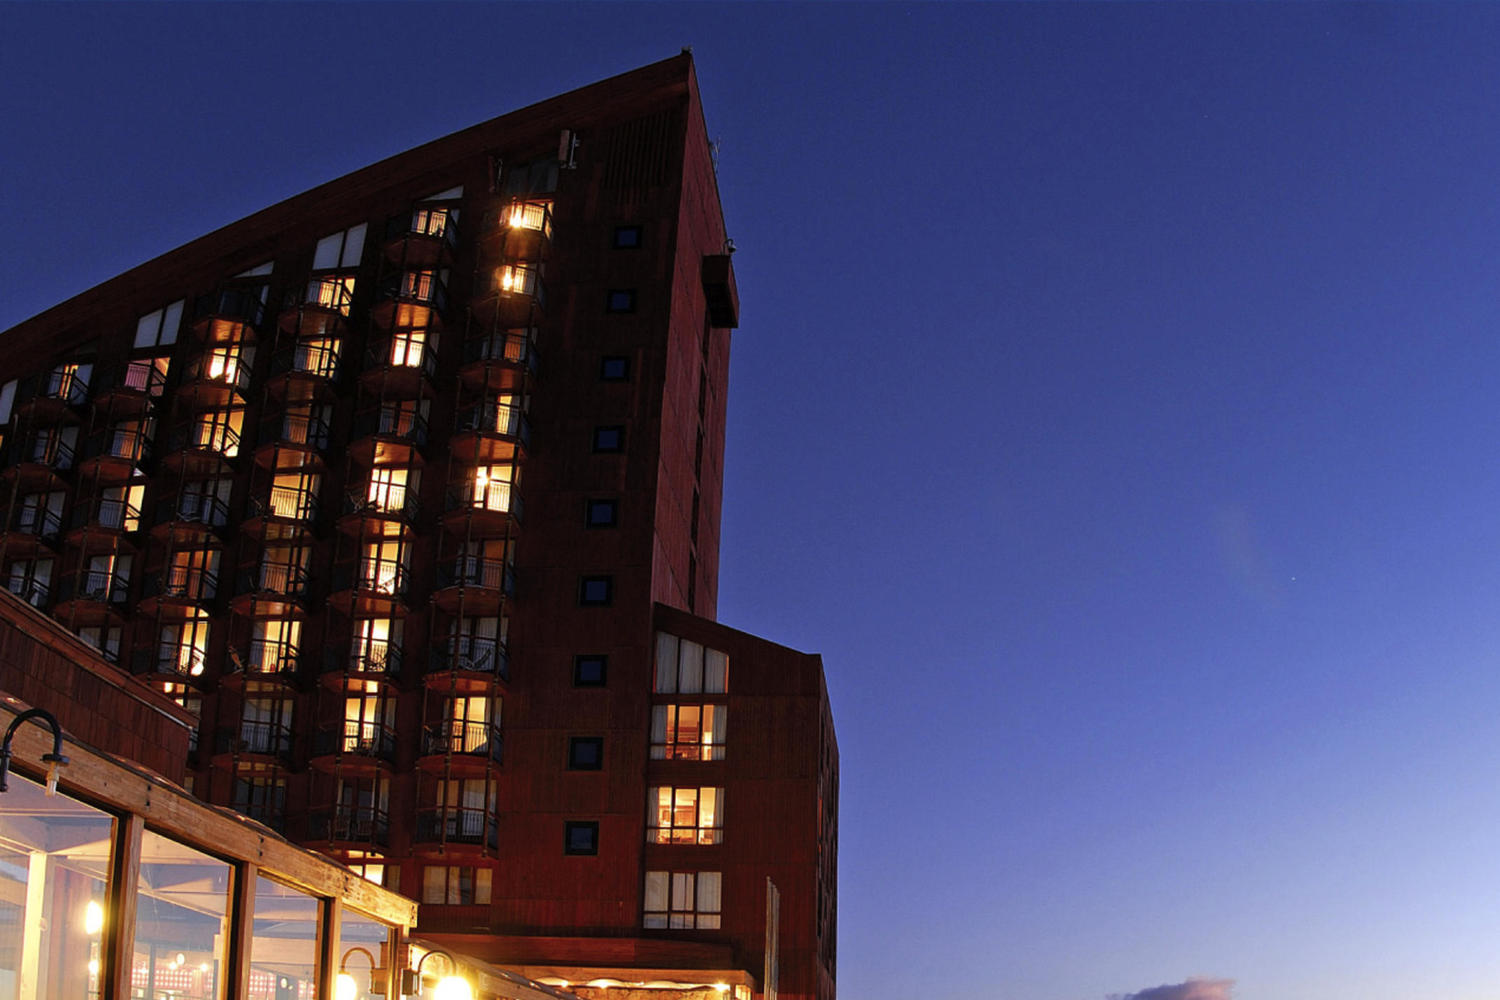 The hotel of Valle Nevado, Chile